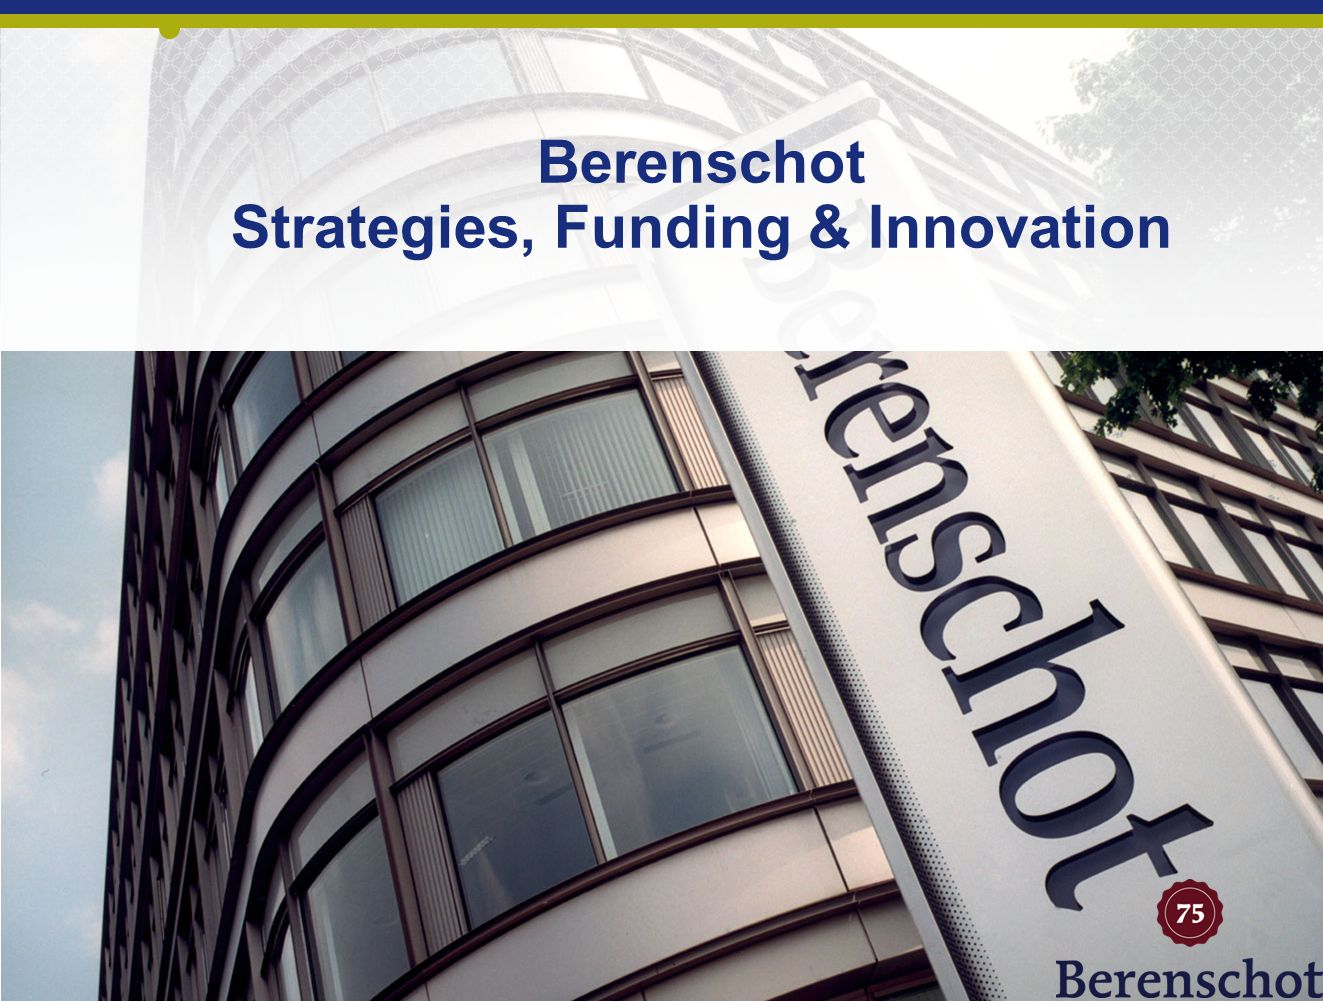 Berenschot Strategies, Funding & Innovation